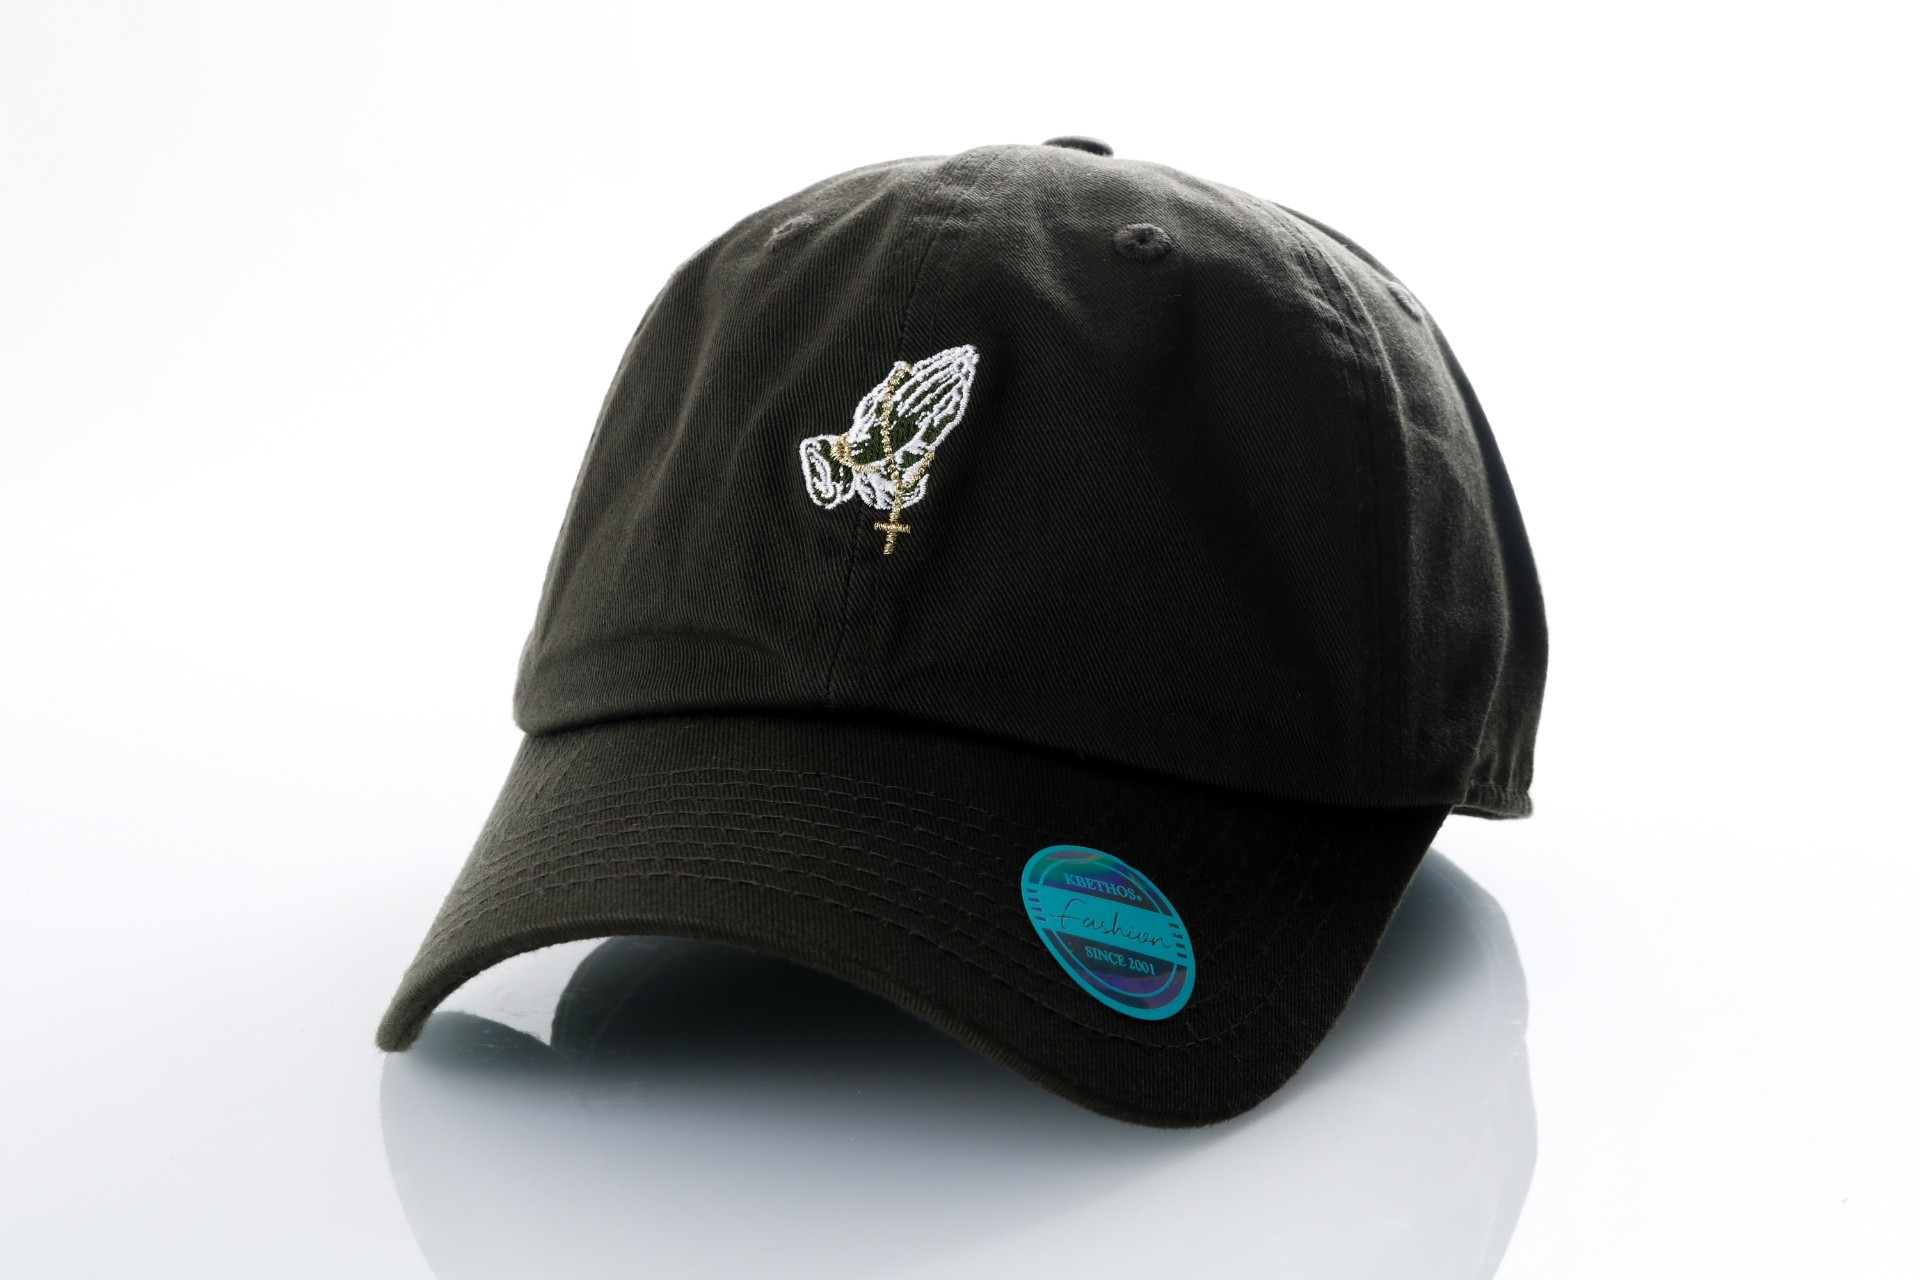 Foto van Ethos Pray KBSV-060 black KBSV-060 dad cap black